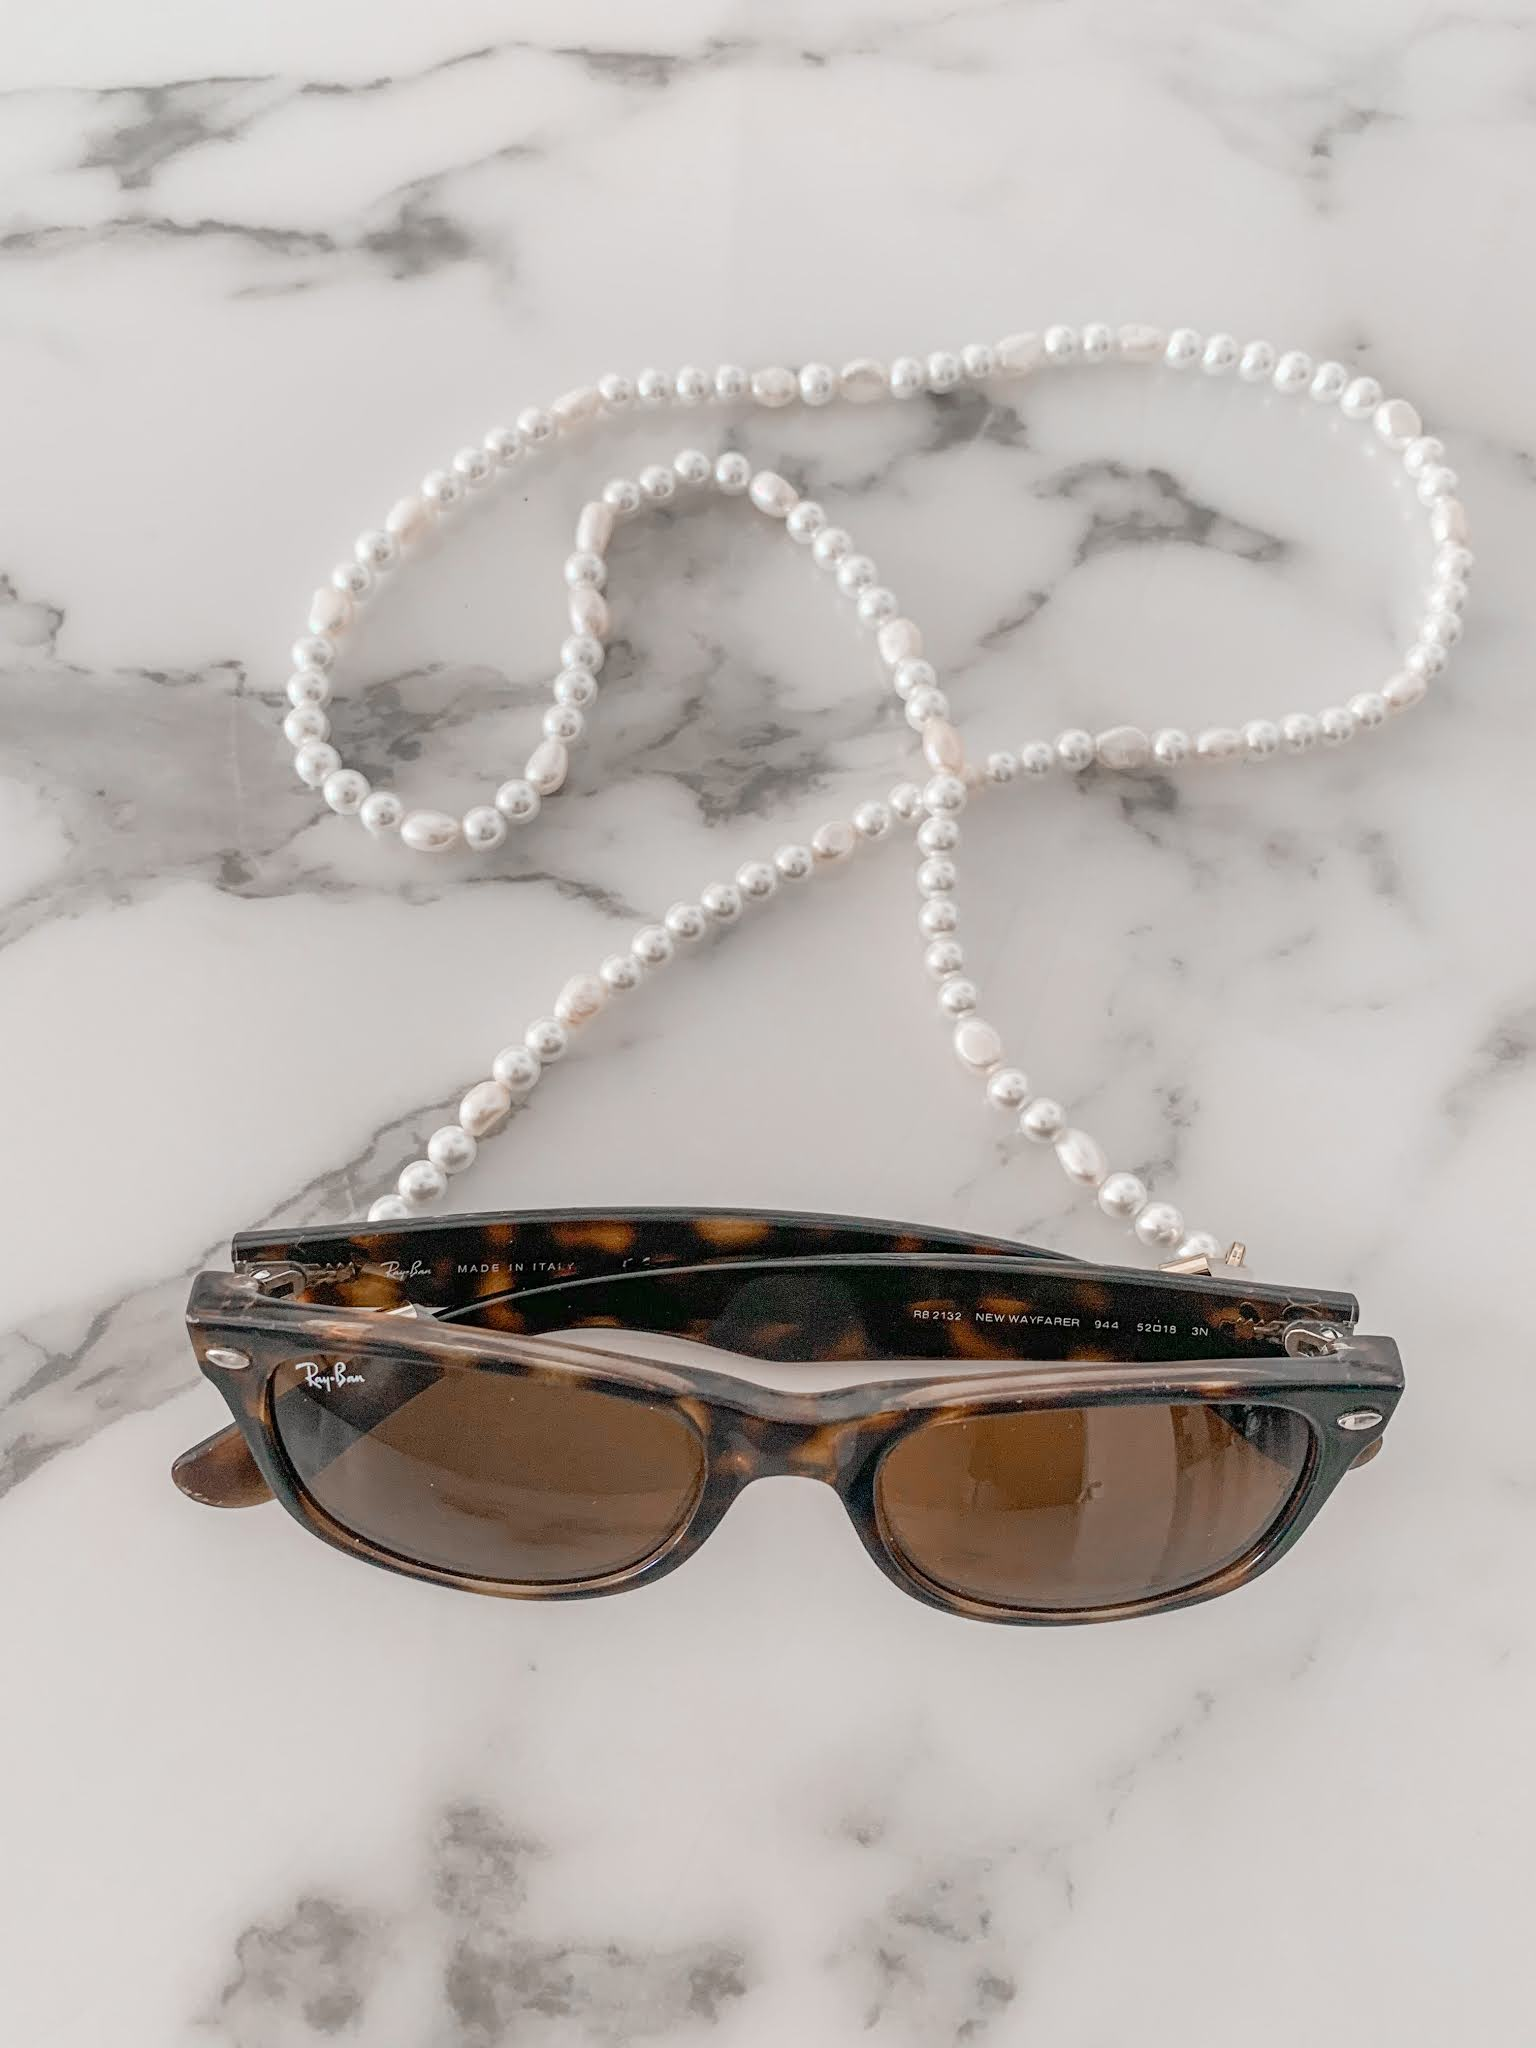 How to use a sunglass chain for your face mask